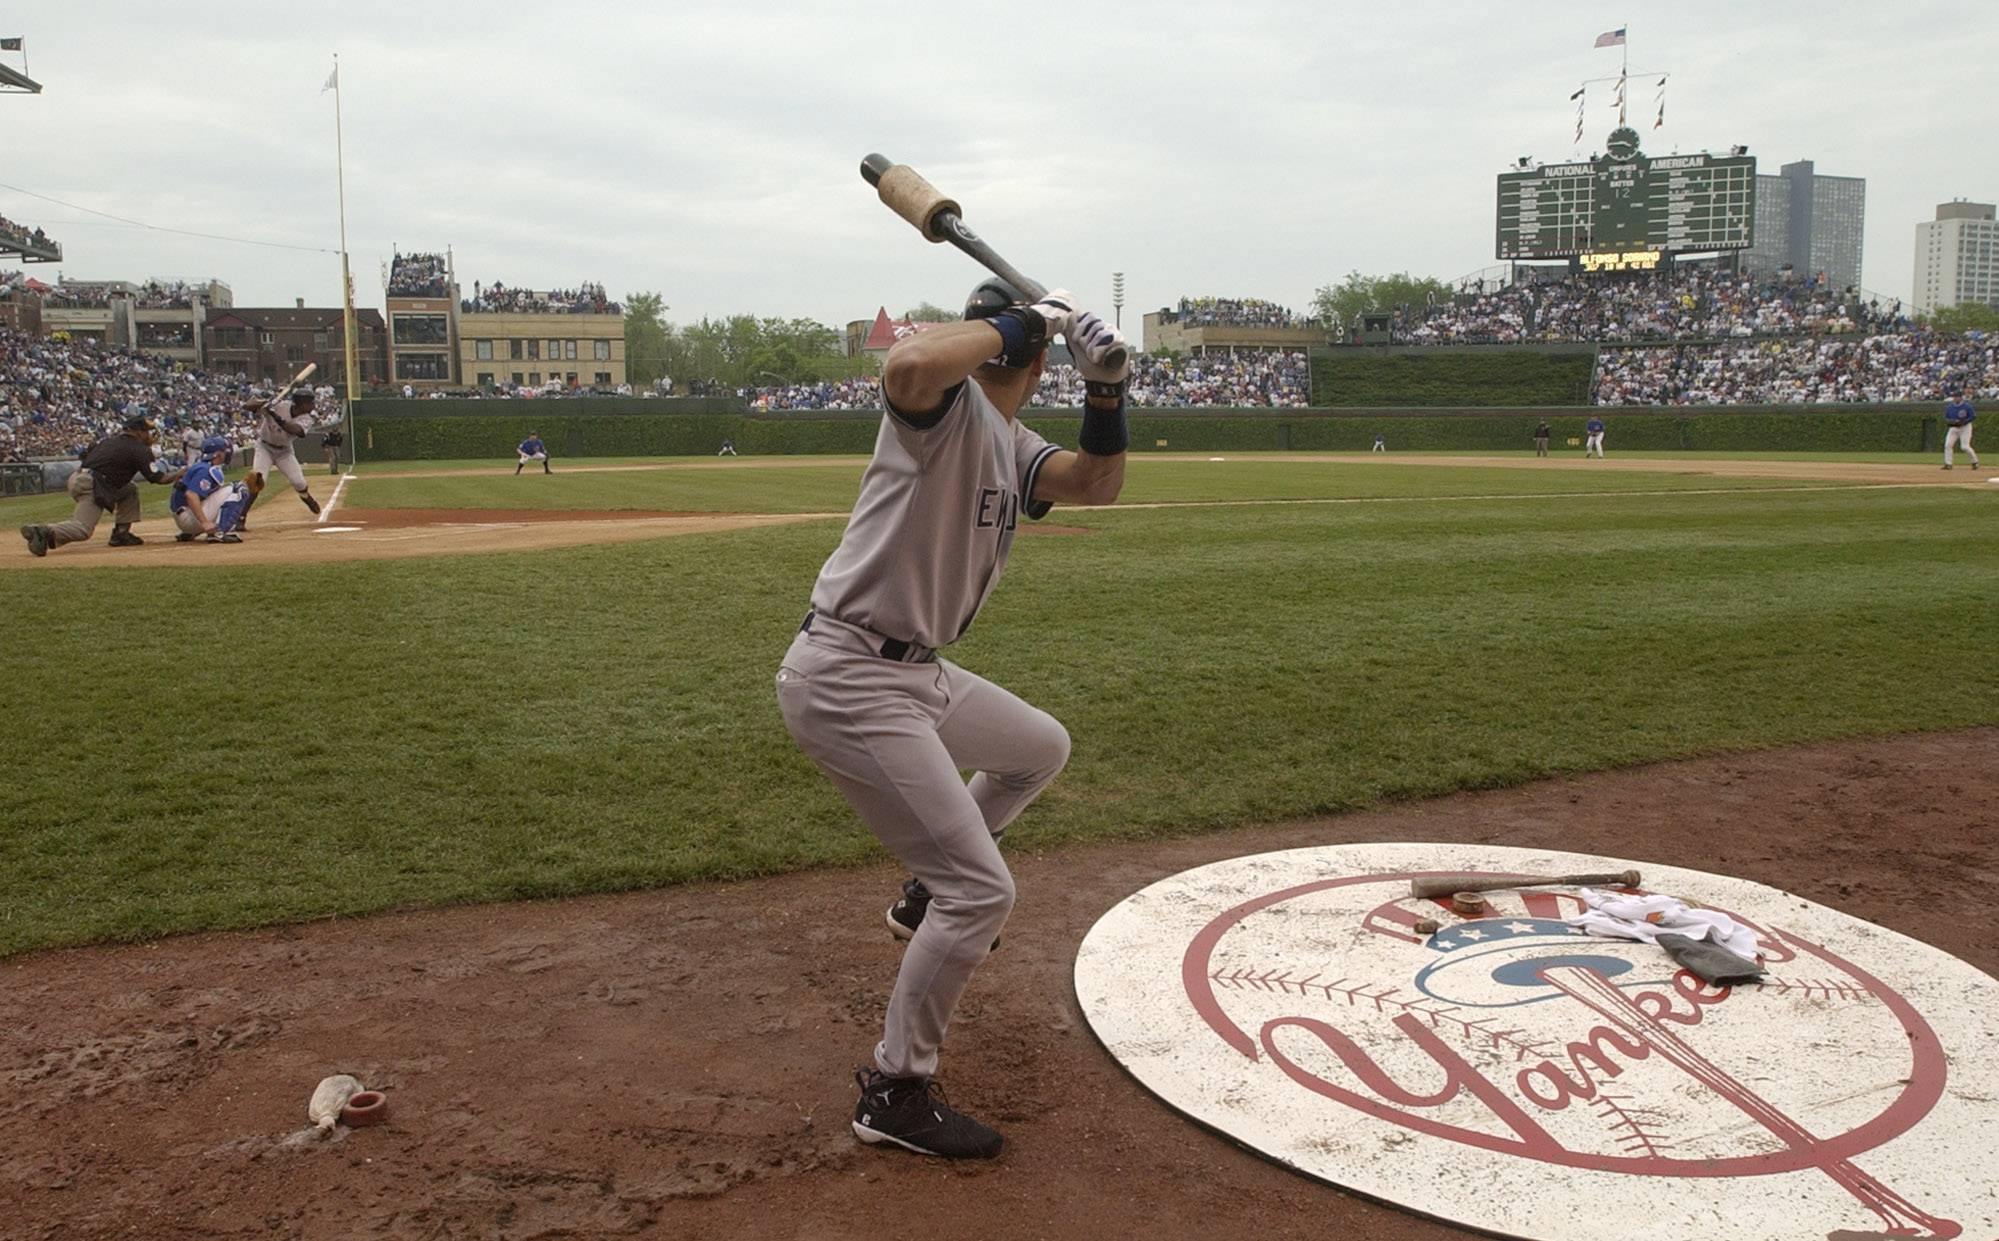 In this June 6, 2003 photo, New York Yankees' Derek Jeter warms up in the on-deck circle in a baseball game against the Chicago Cubs at Wrigley Field in Chicago.